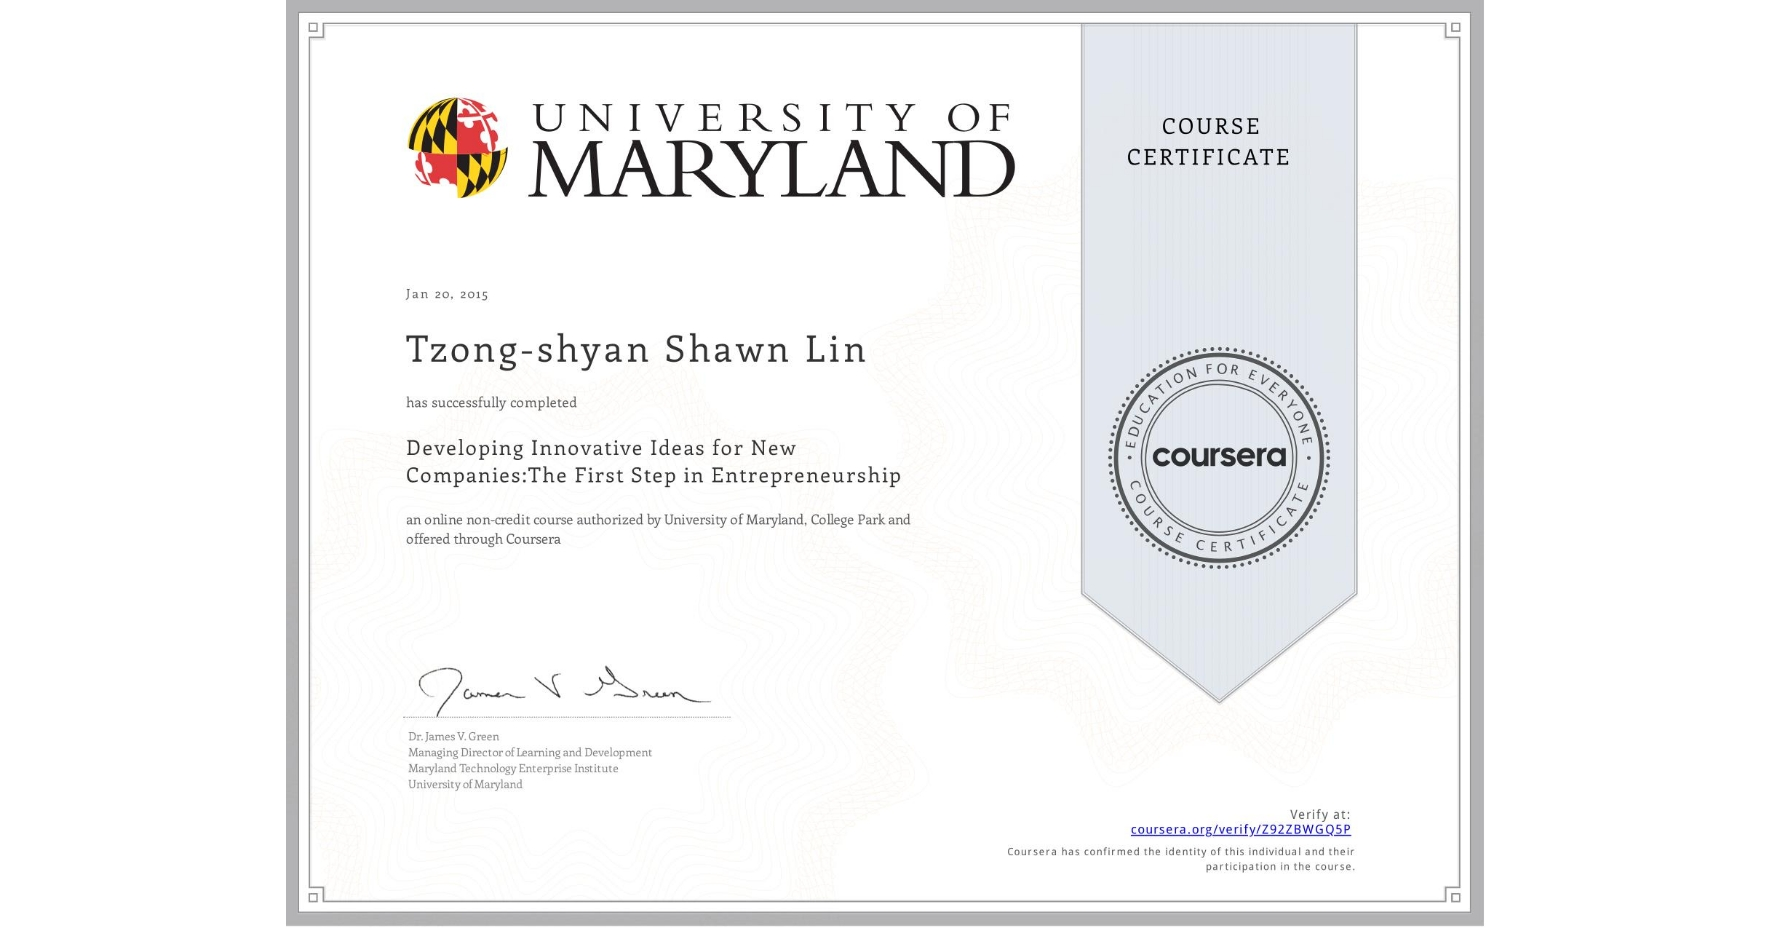 View certificate for Tzong-shyan Shawn Lin, Developing Innovative Ideas for New Companies:The First Step in Entrepreneurship, an online non-credit course authorized by University of Maryland, College Park and offered through Coursera